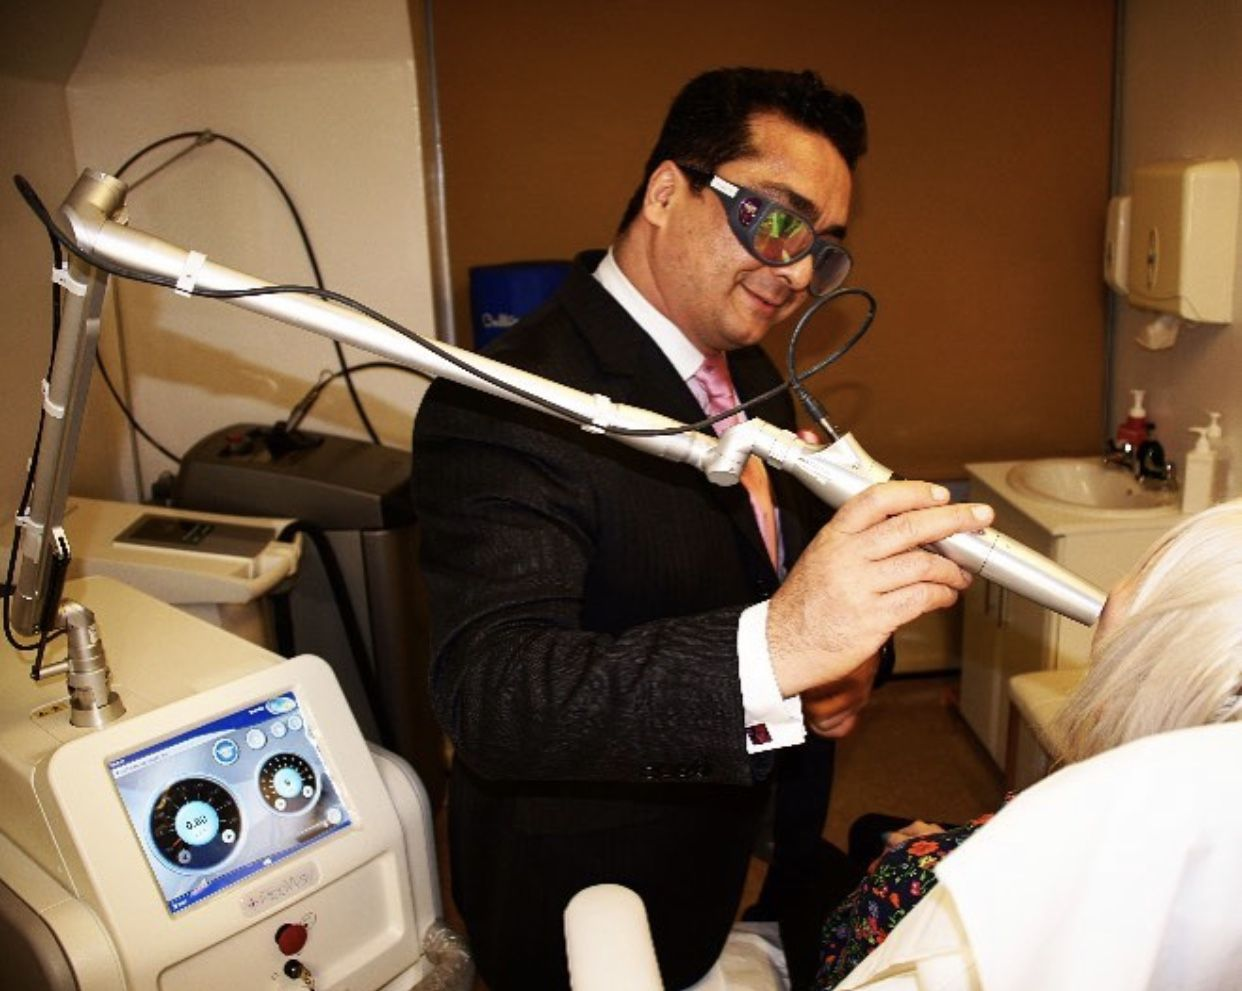 Reasons to visit London Medical and Aesthetic Clinic